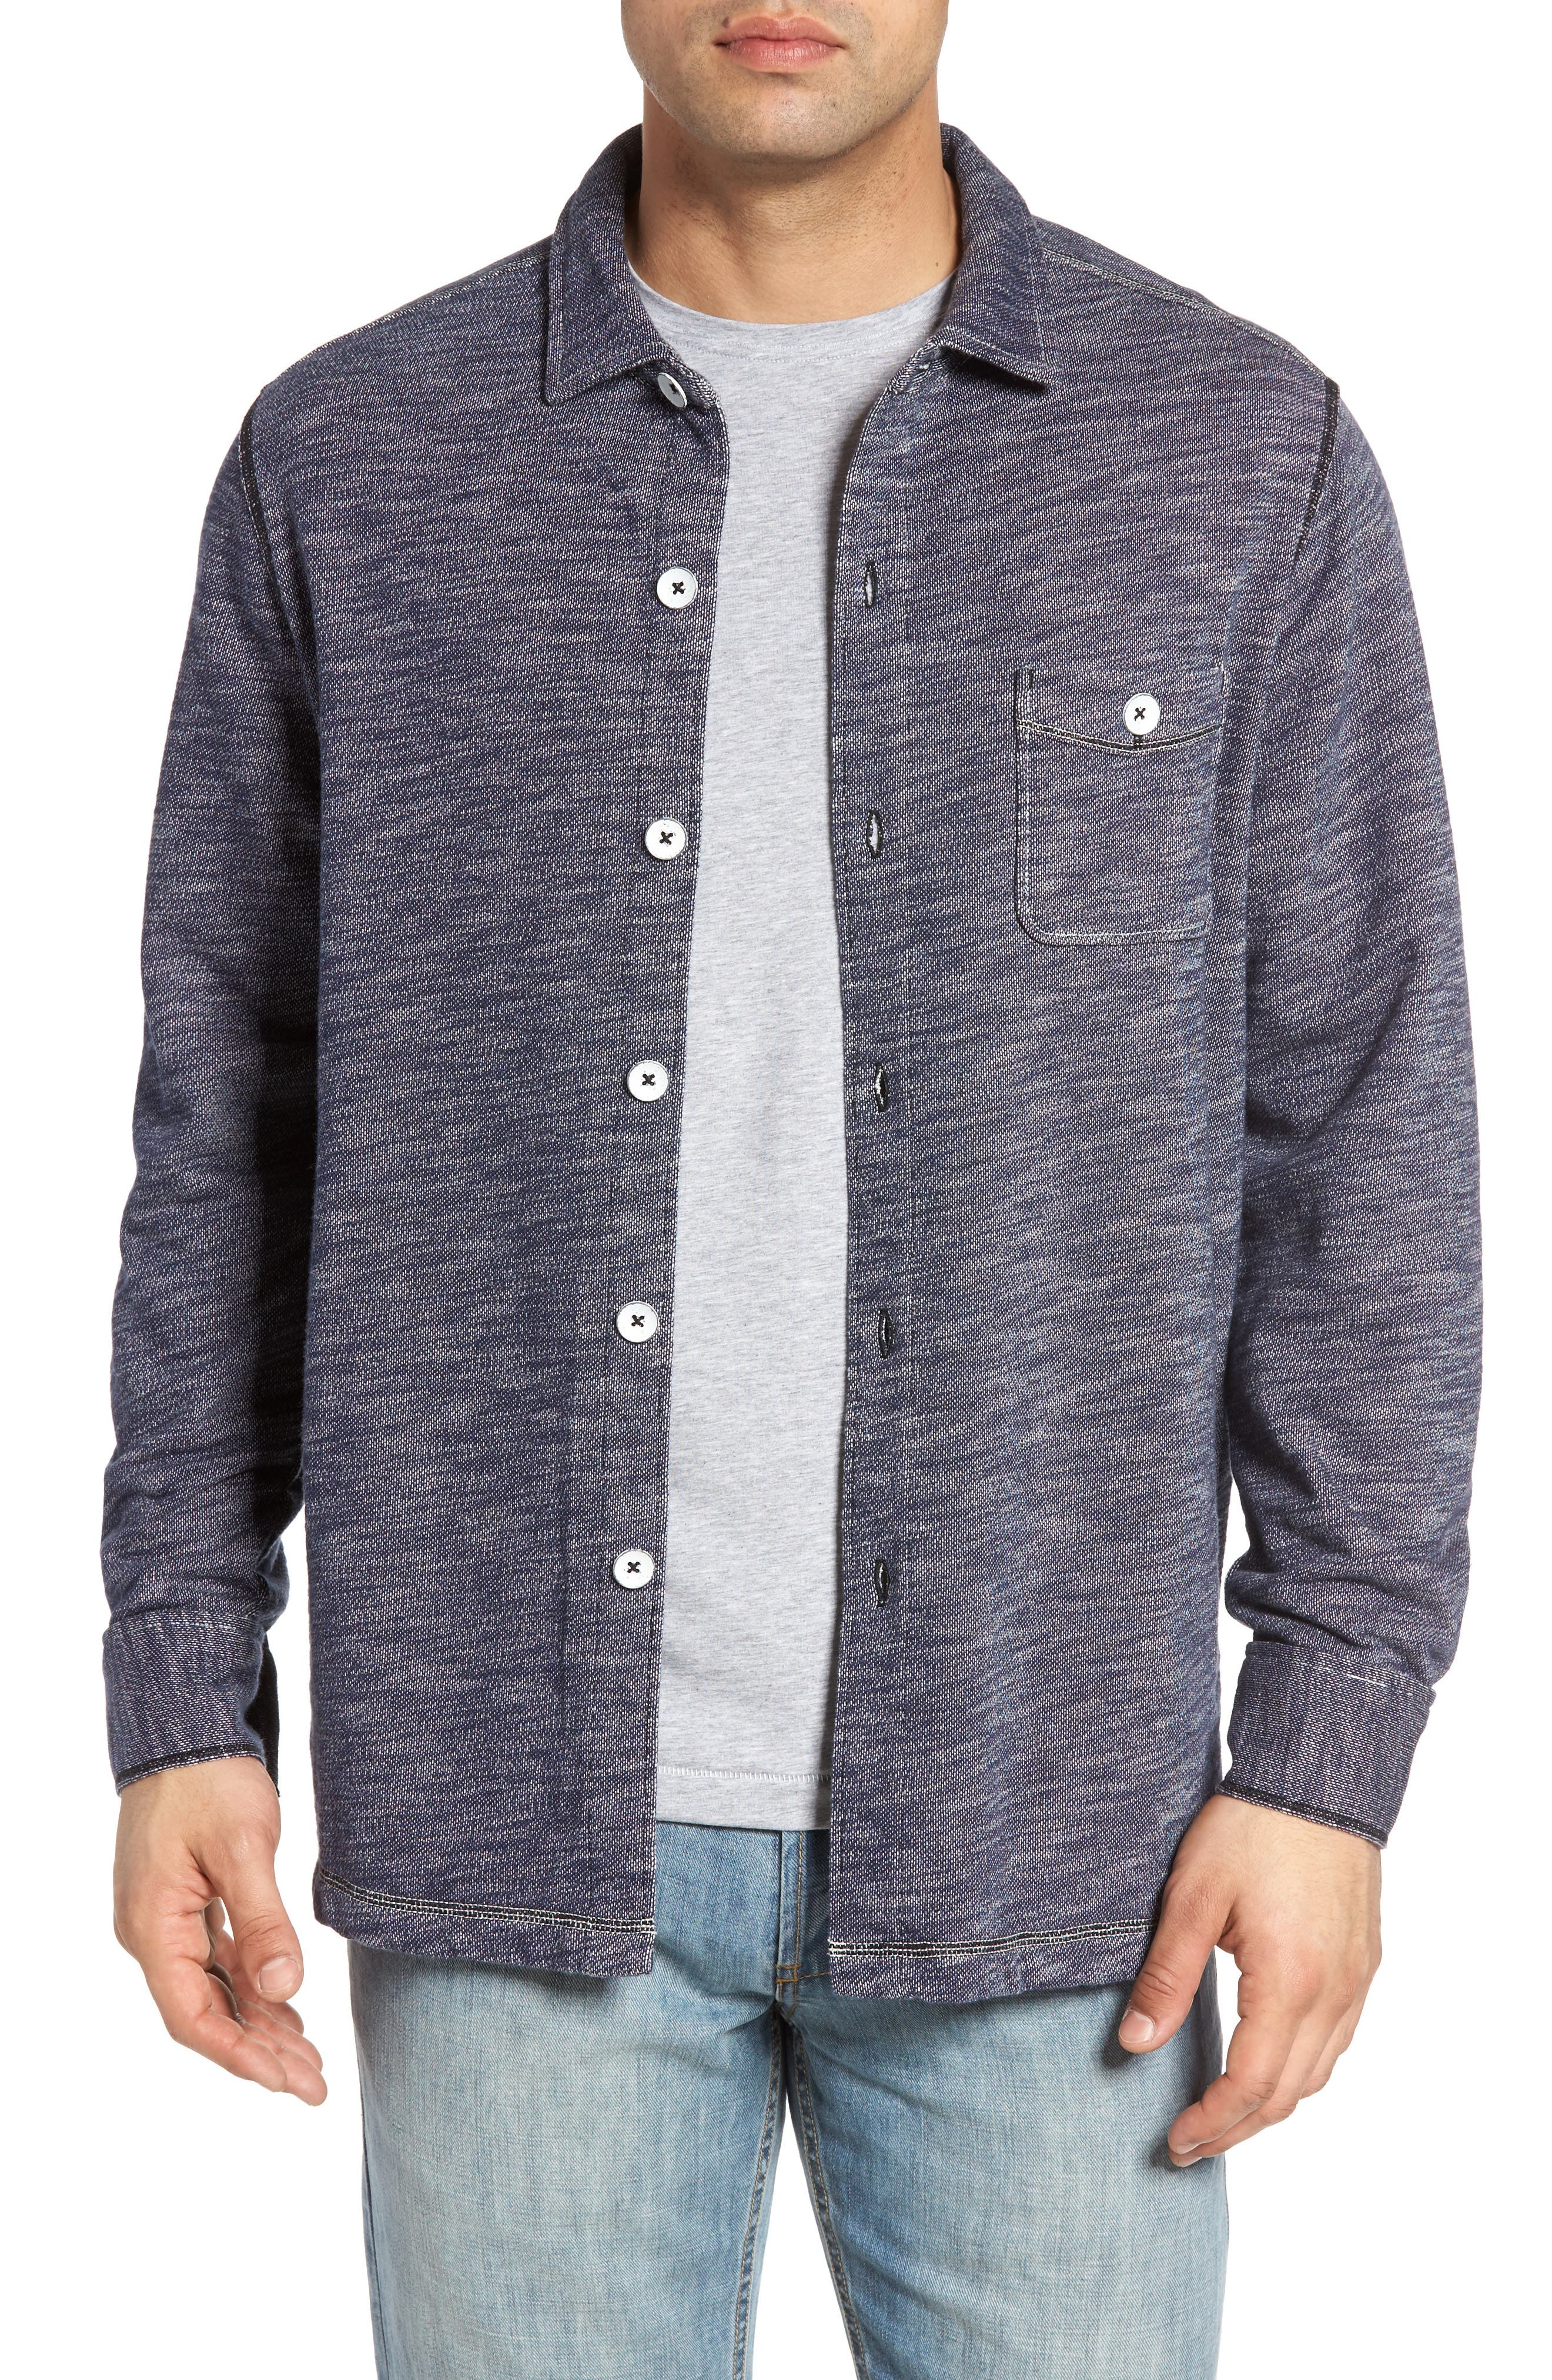 Main Image - Tommy Bahama Beach Ridge Shirt Jacket